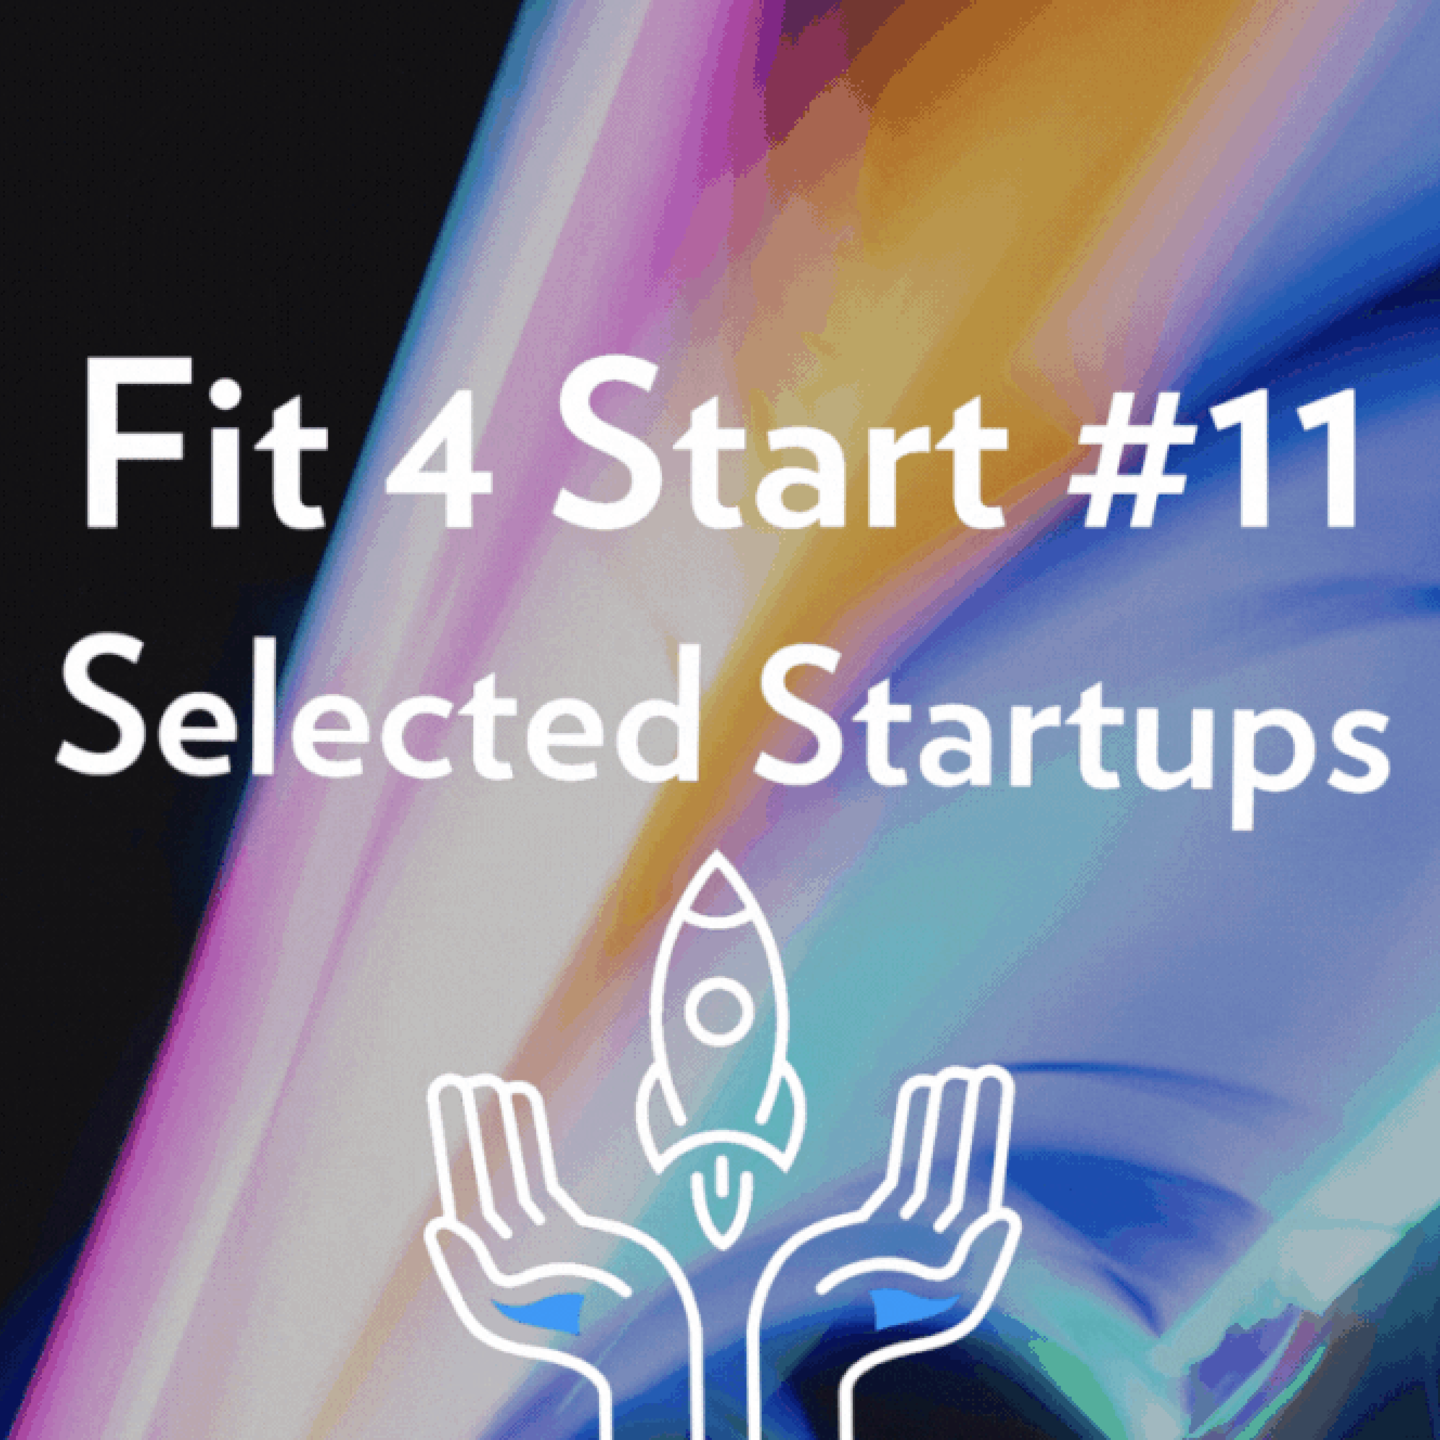 Fit 4 Start #11: 15 companies selected